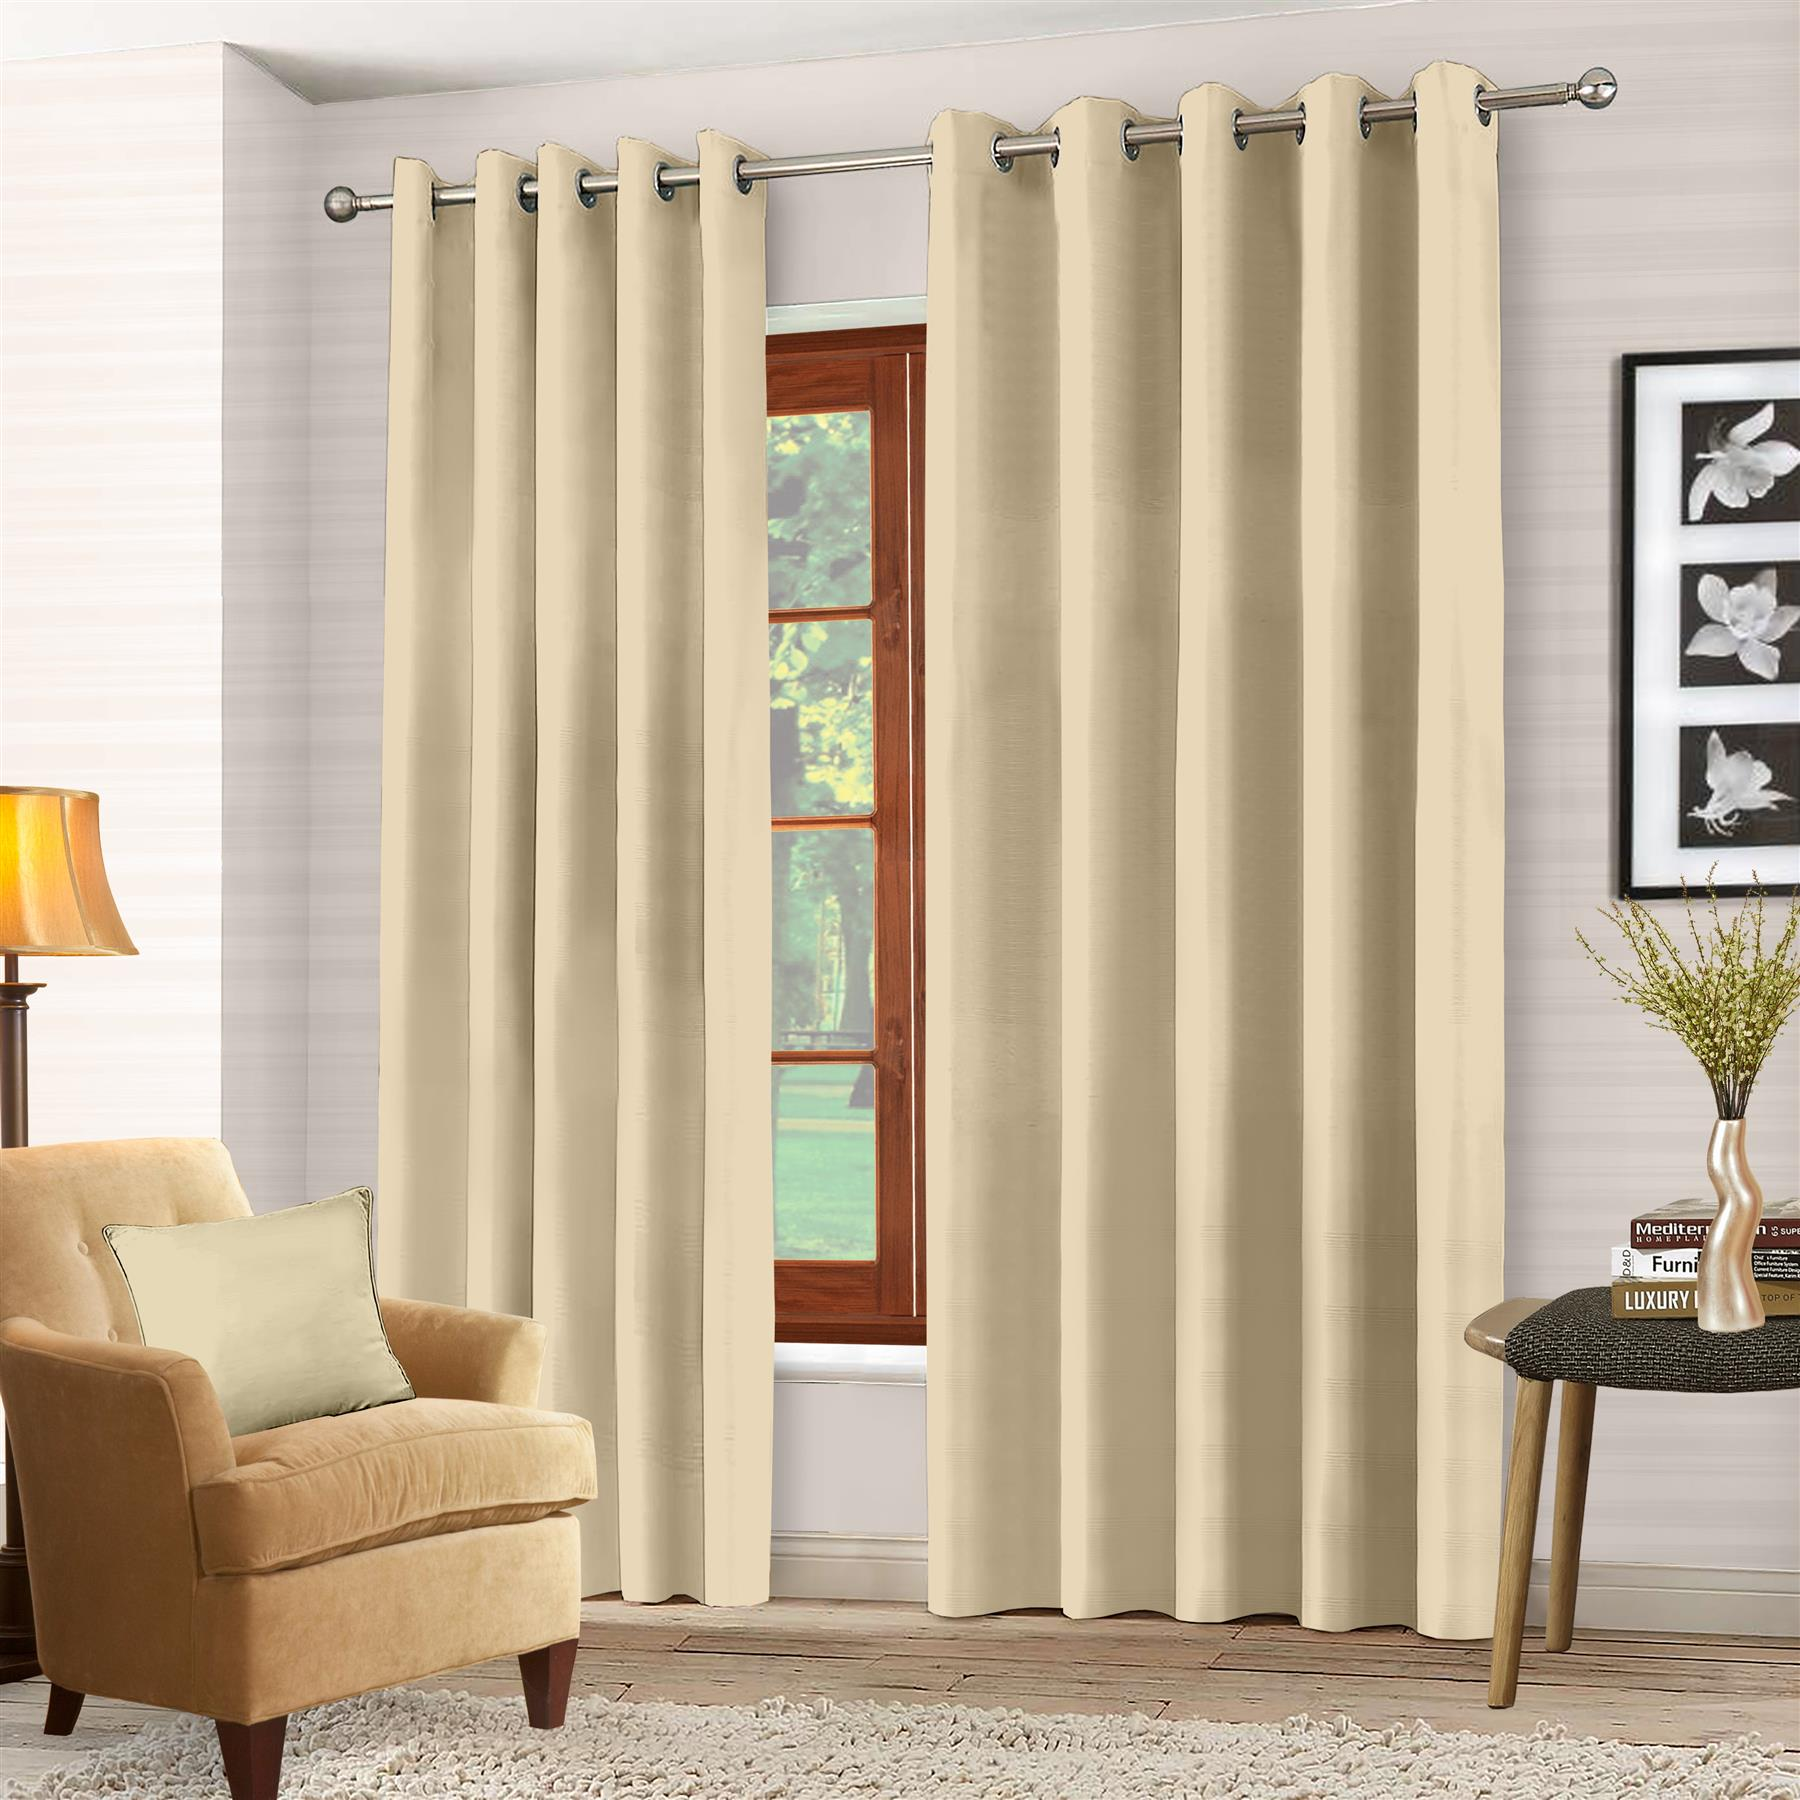 Luxury-Thermal-Blackout-Eyelet-Ring-Top-Curtains-Pair-with-tie-backs thumbnail 22